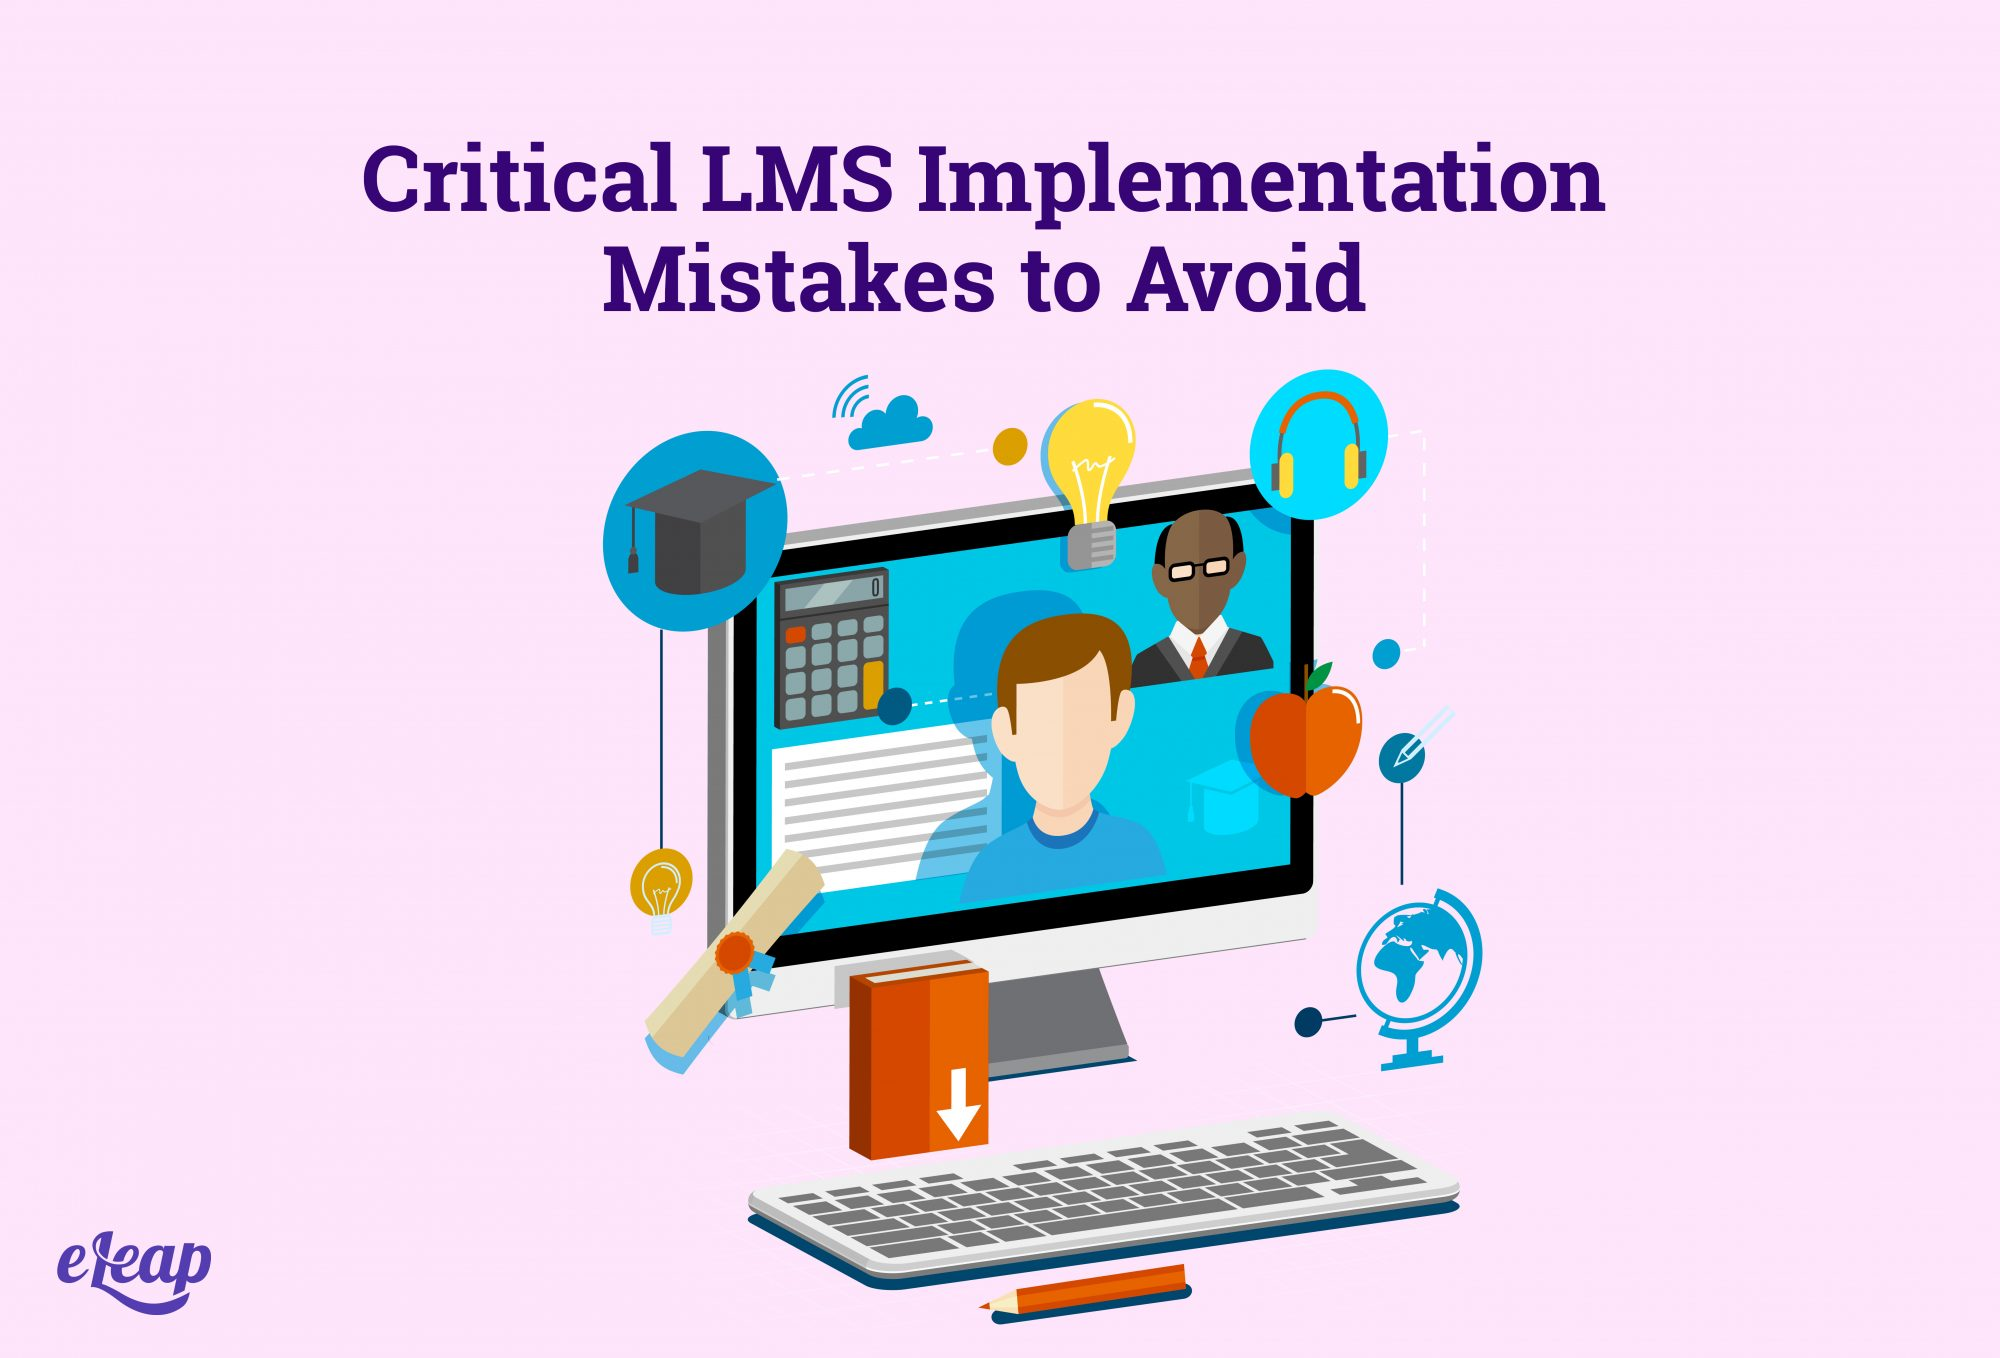 Critical LMS Implementation Mistakes to Avoid